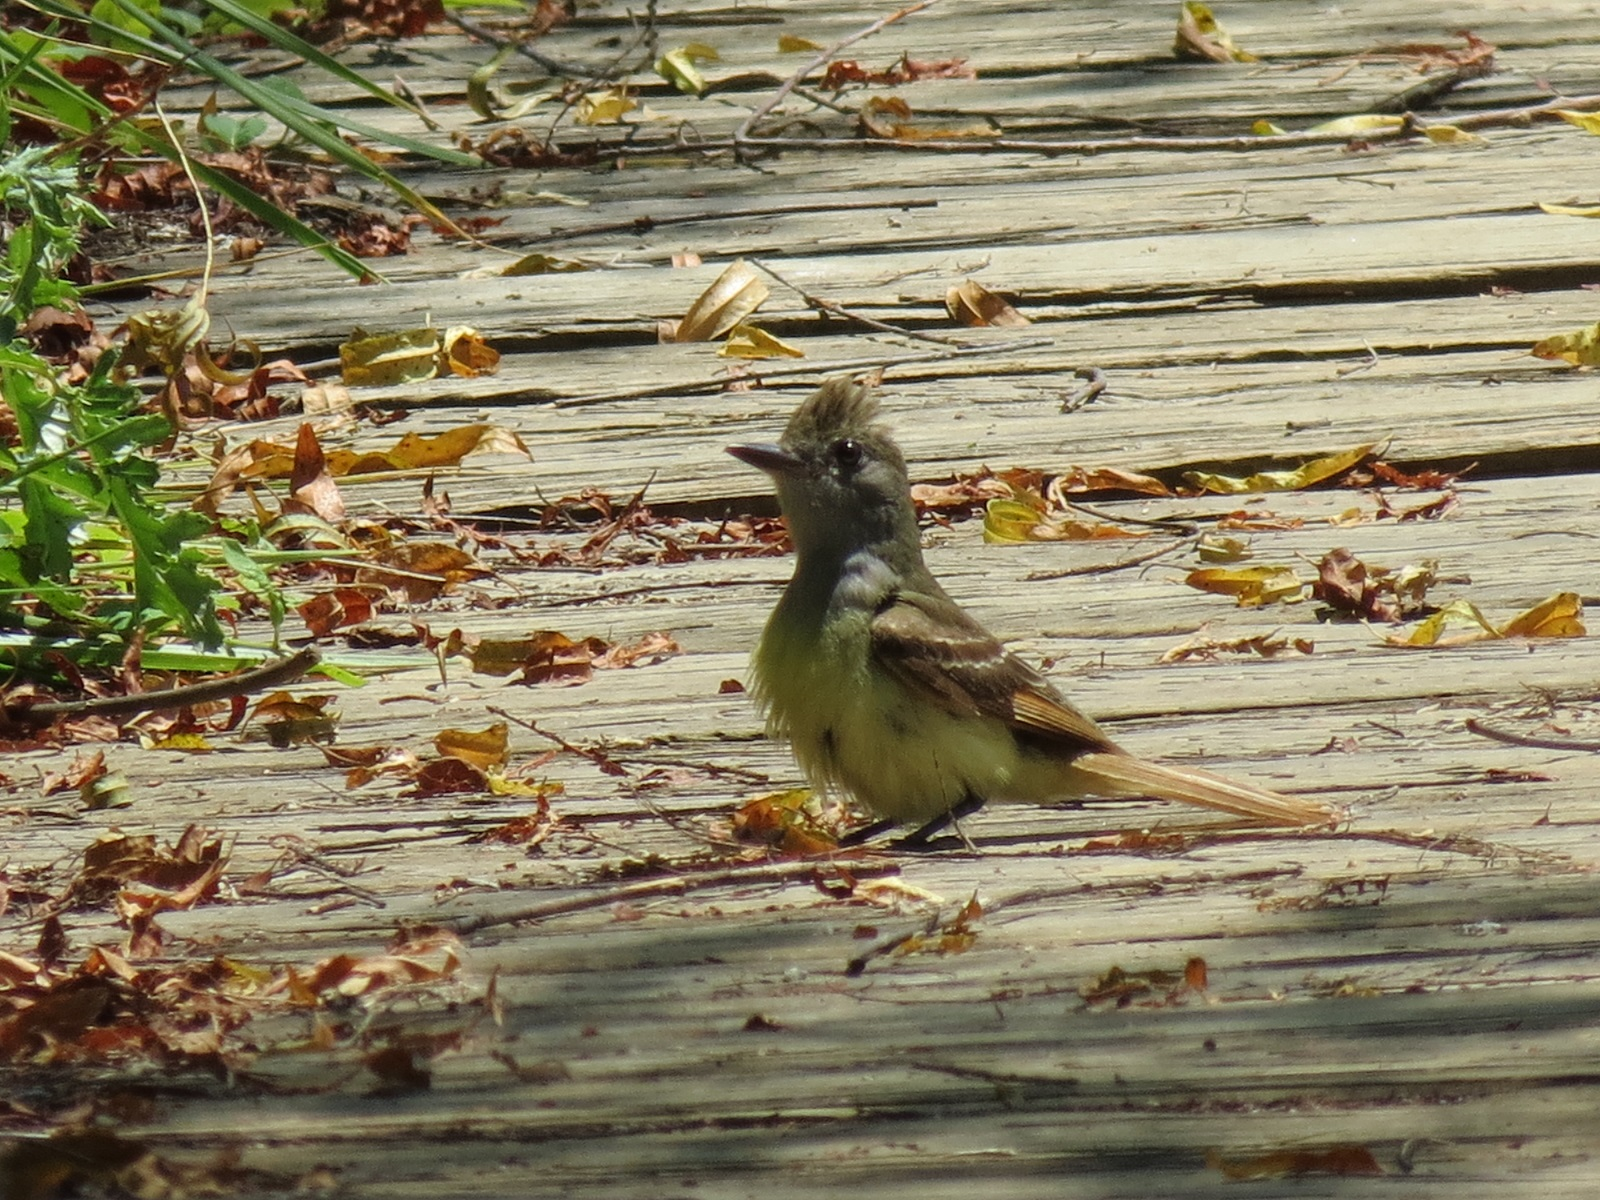 This Image Above And The One Below Were Taken At A Local Park Young Great Crested Flycatcher Was Begging For Food On Boardwalk